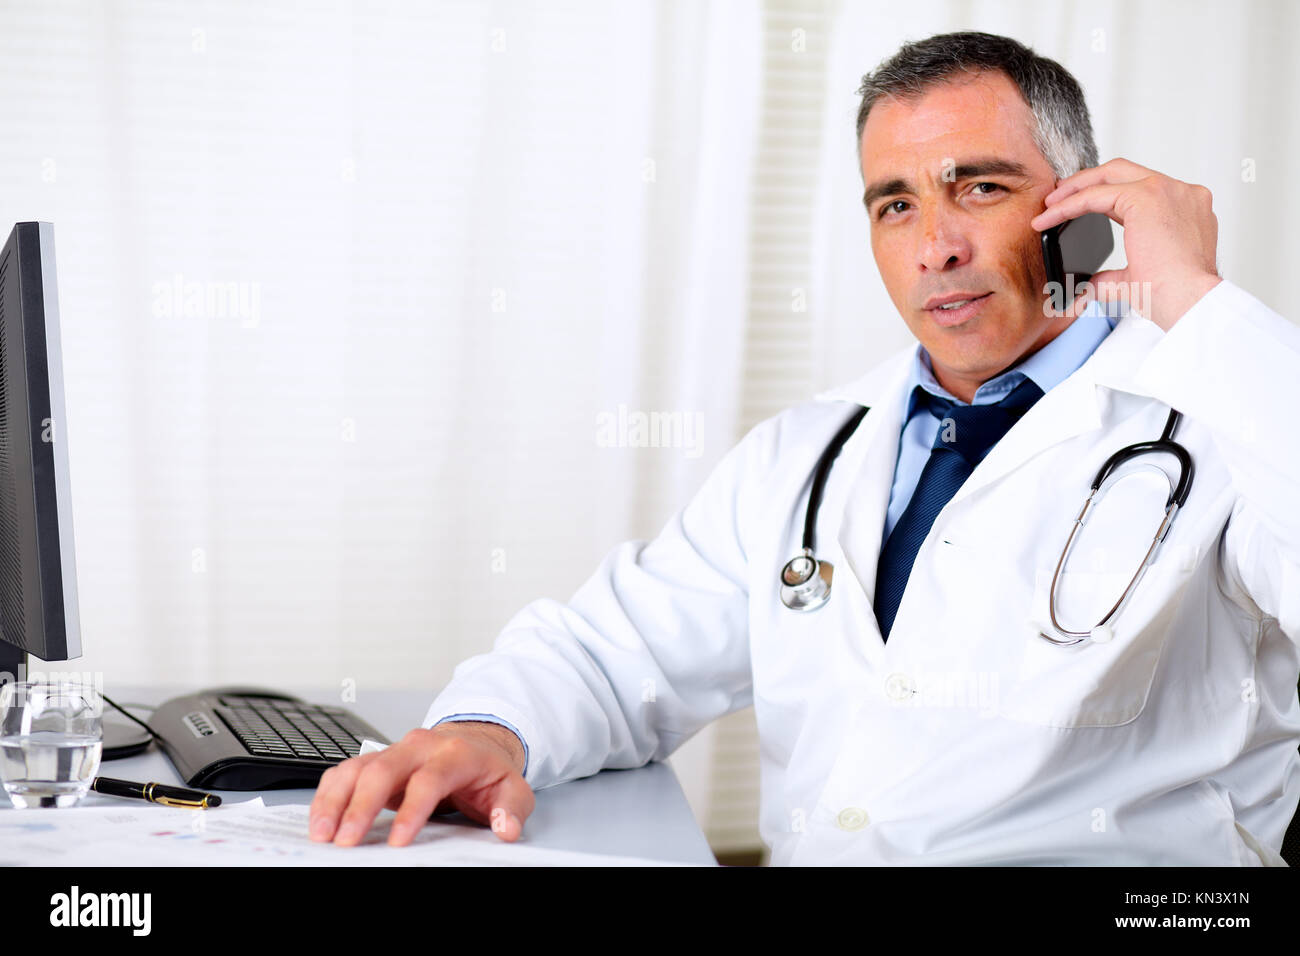 Portrait of a professional friendly senior doctor using a mobile phone. - Stock Image